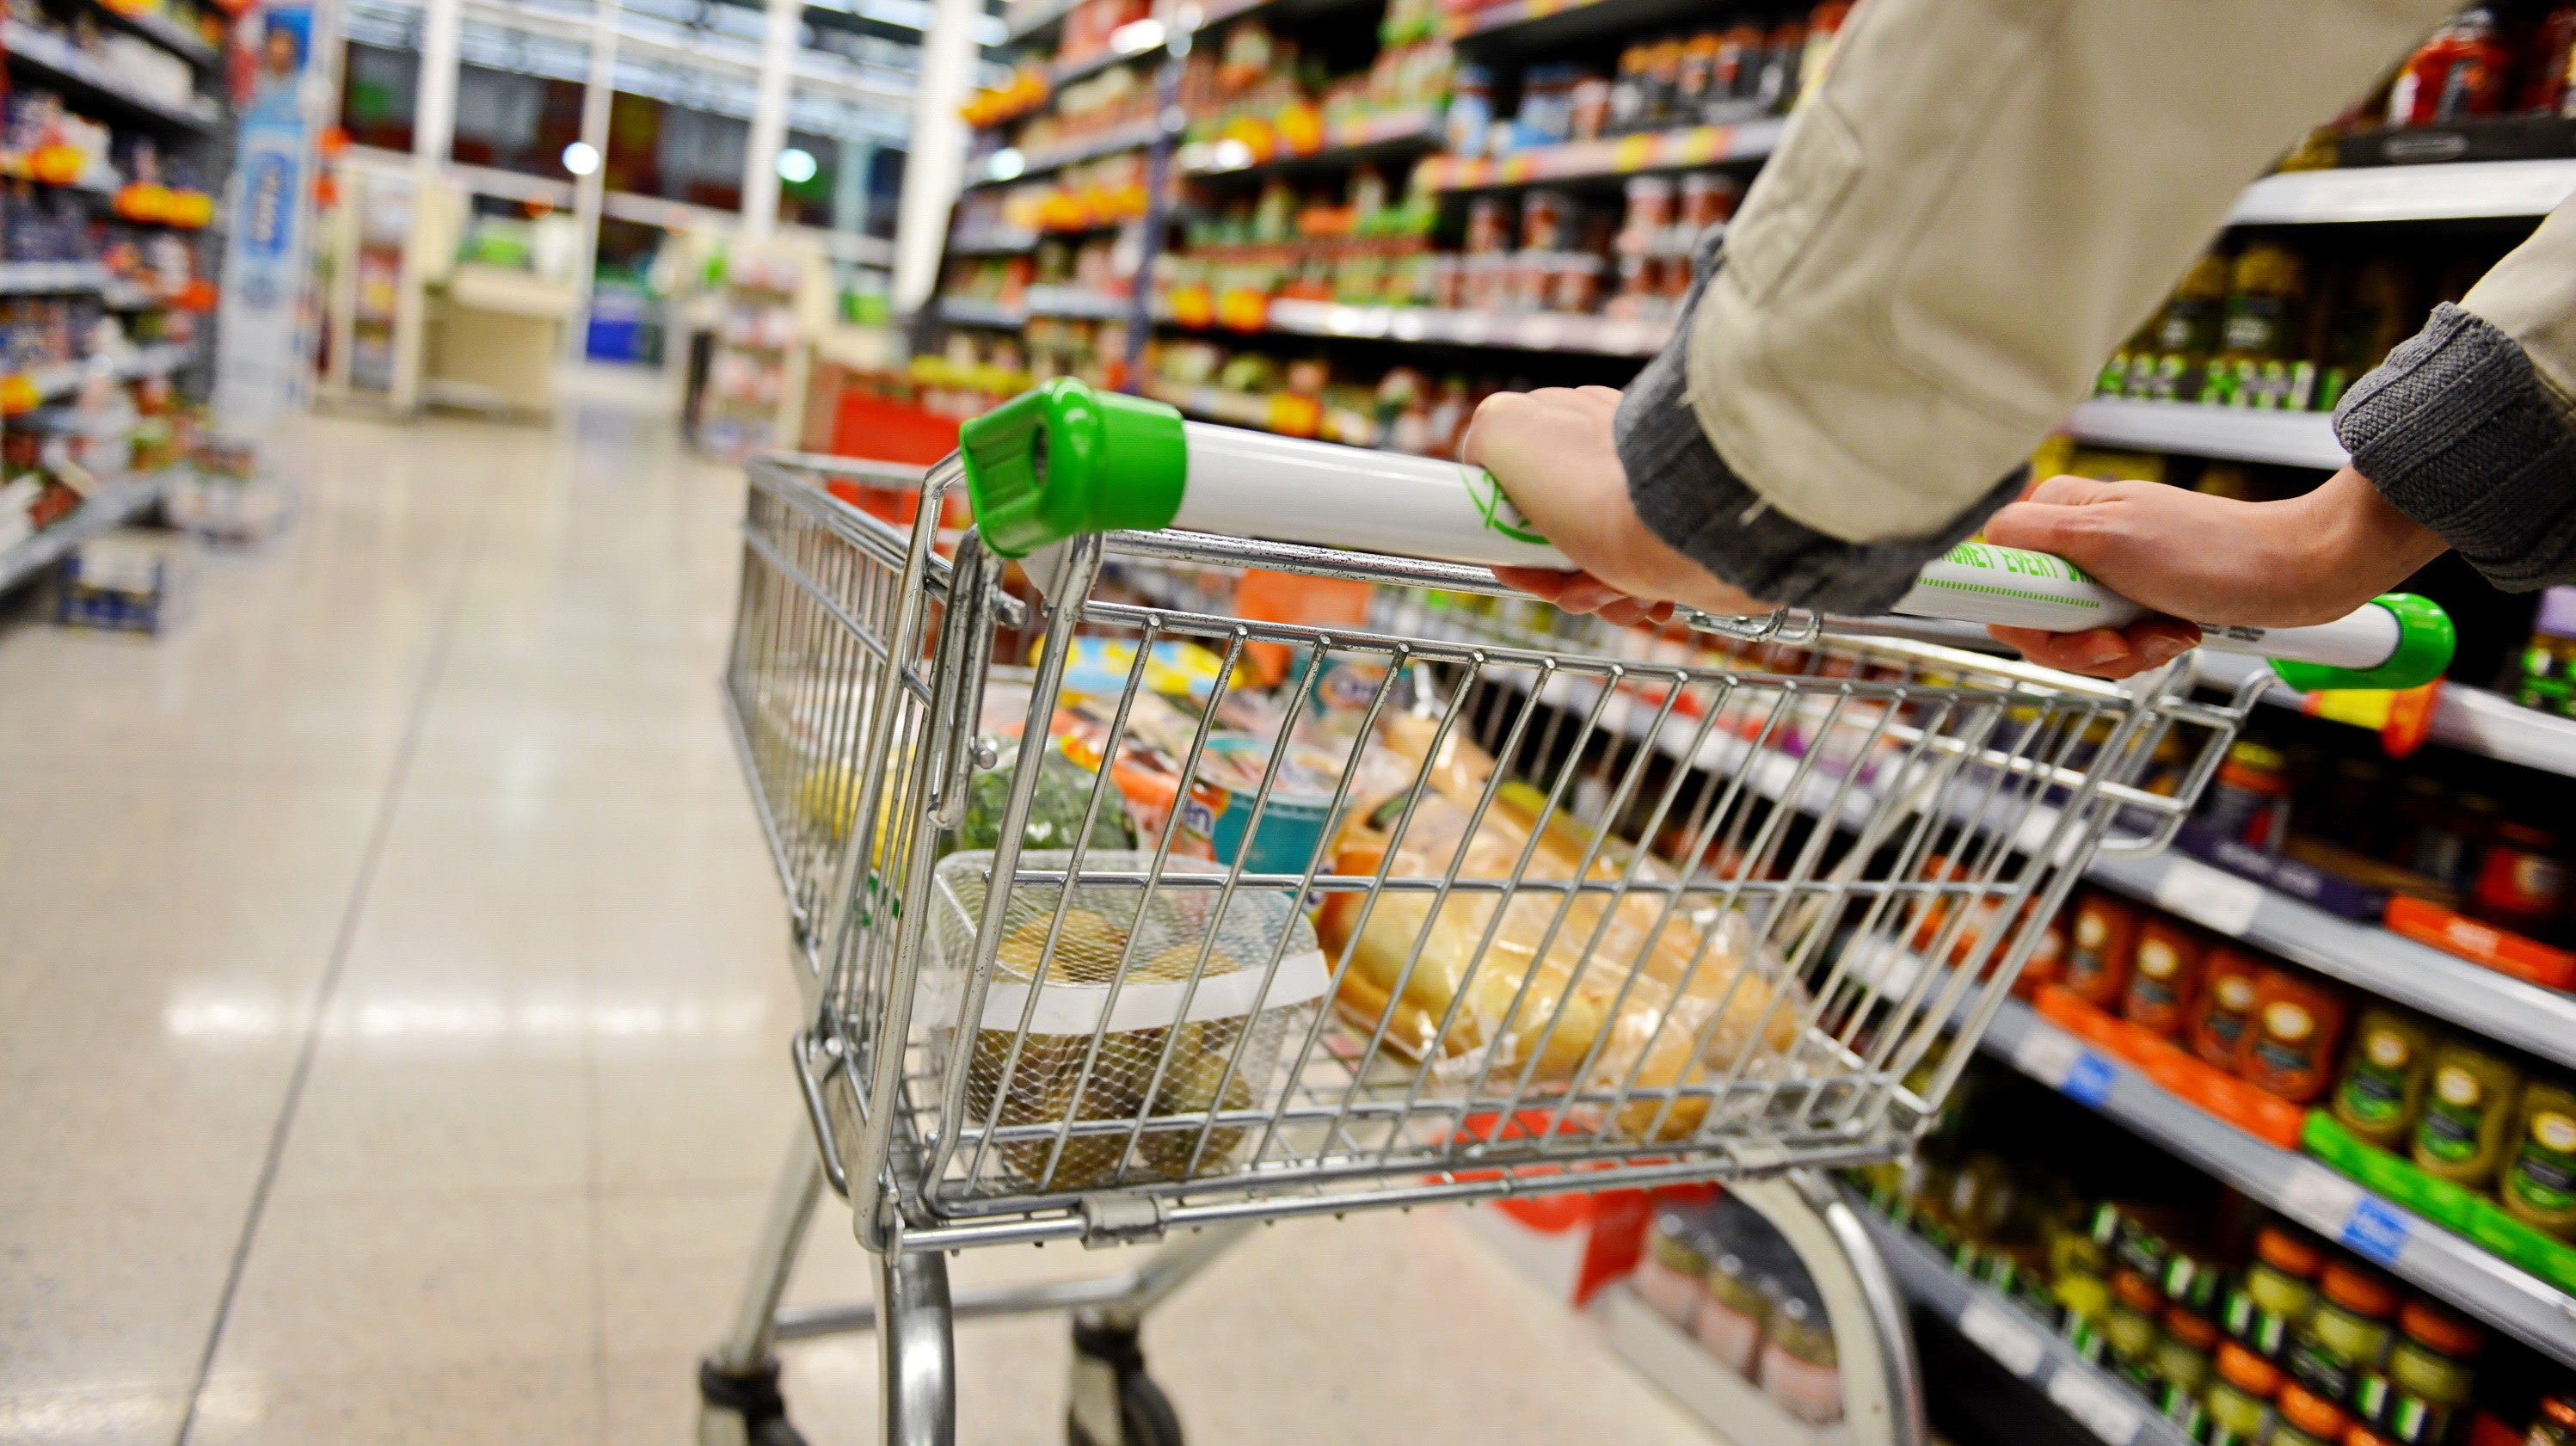 You Don't Need To Sanitise Your Groceries